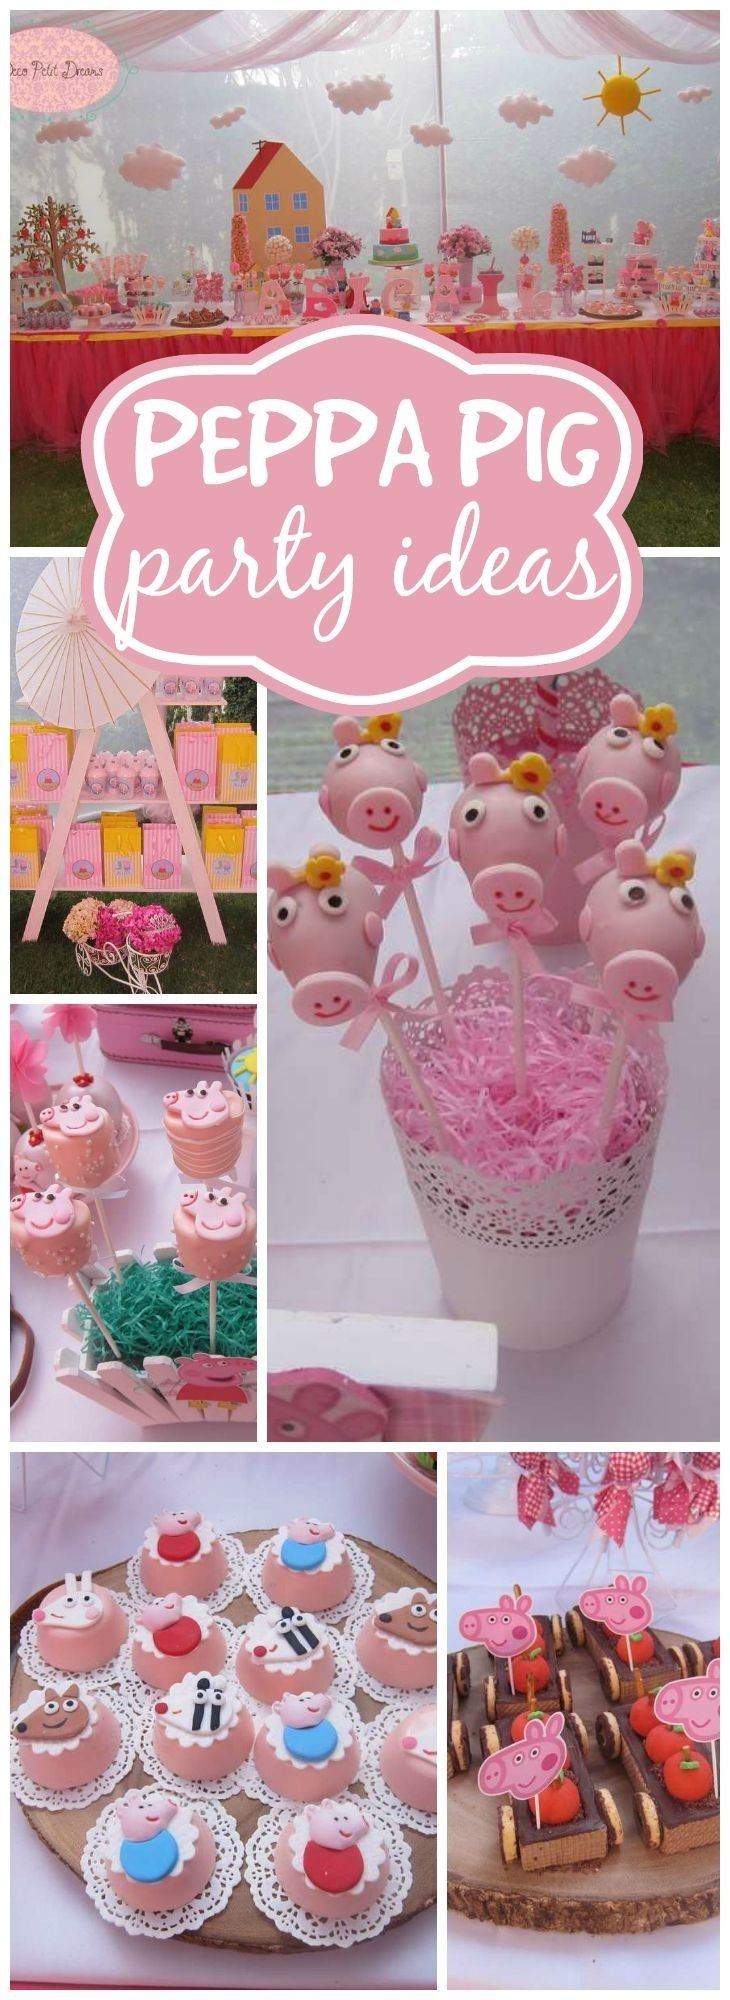 10 Cute Girl Birthday Party Ideas Pinterest 295 best peppa pig party ideas images on pinterest anniversary 1